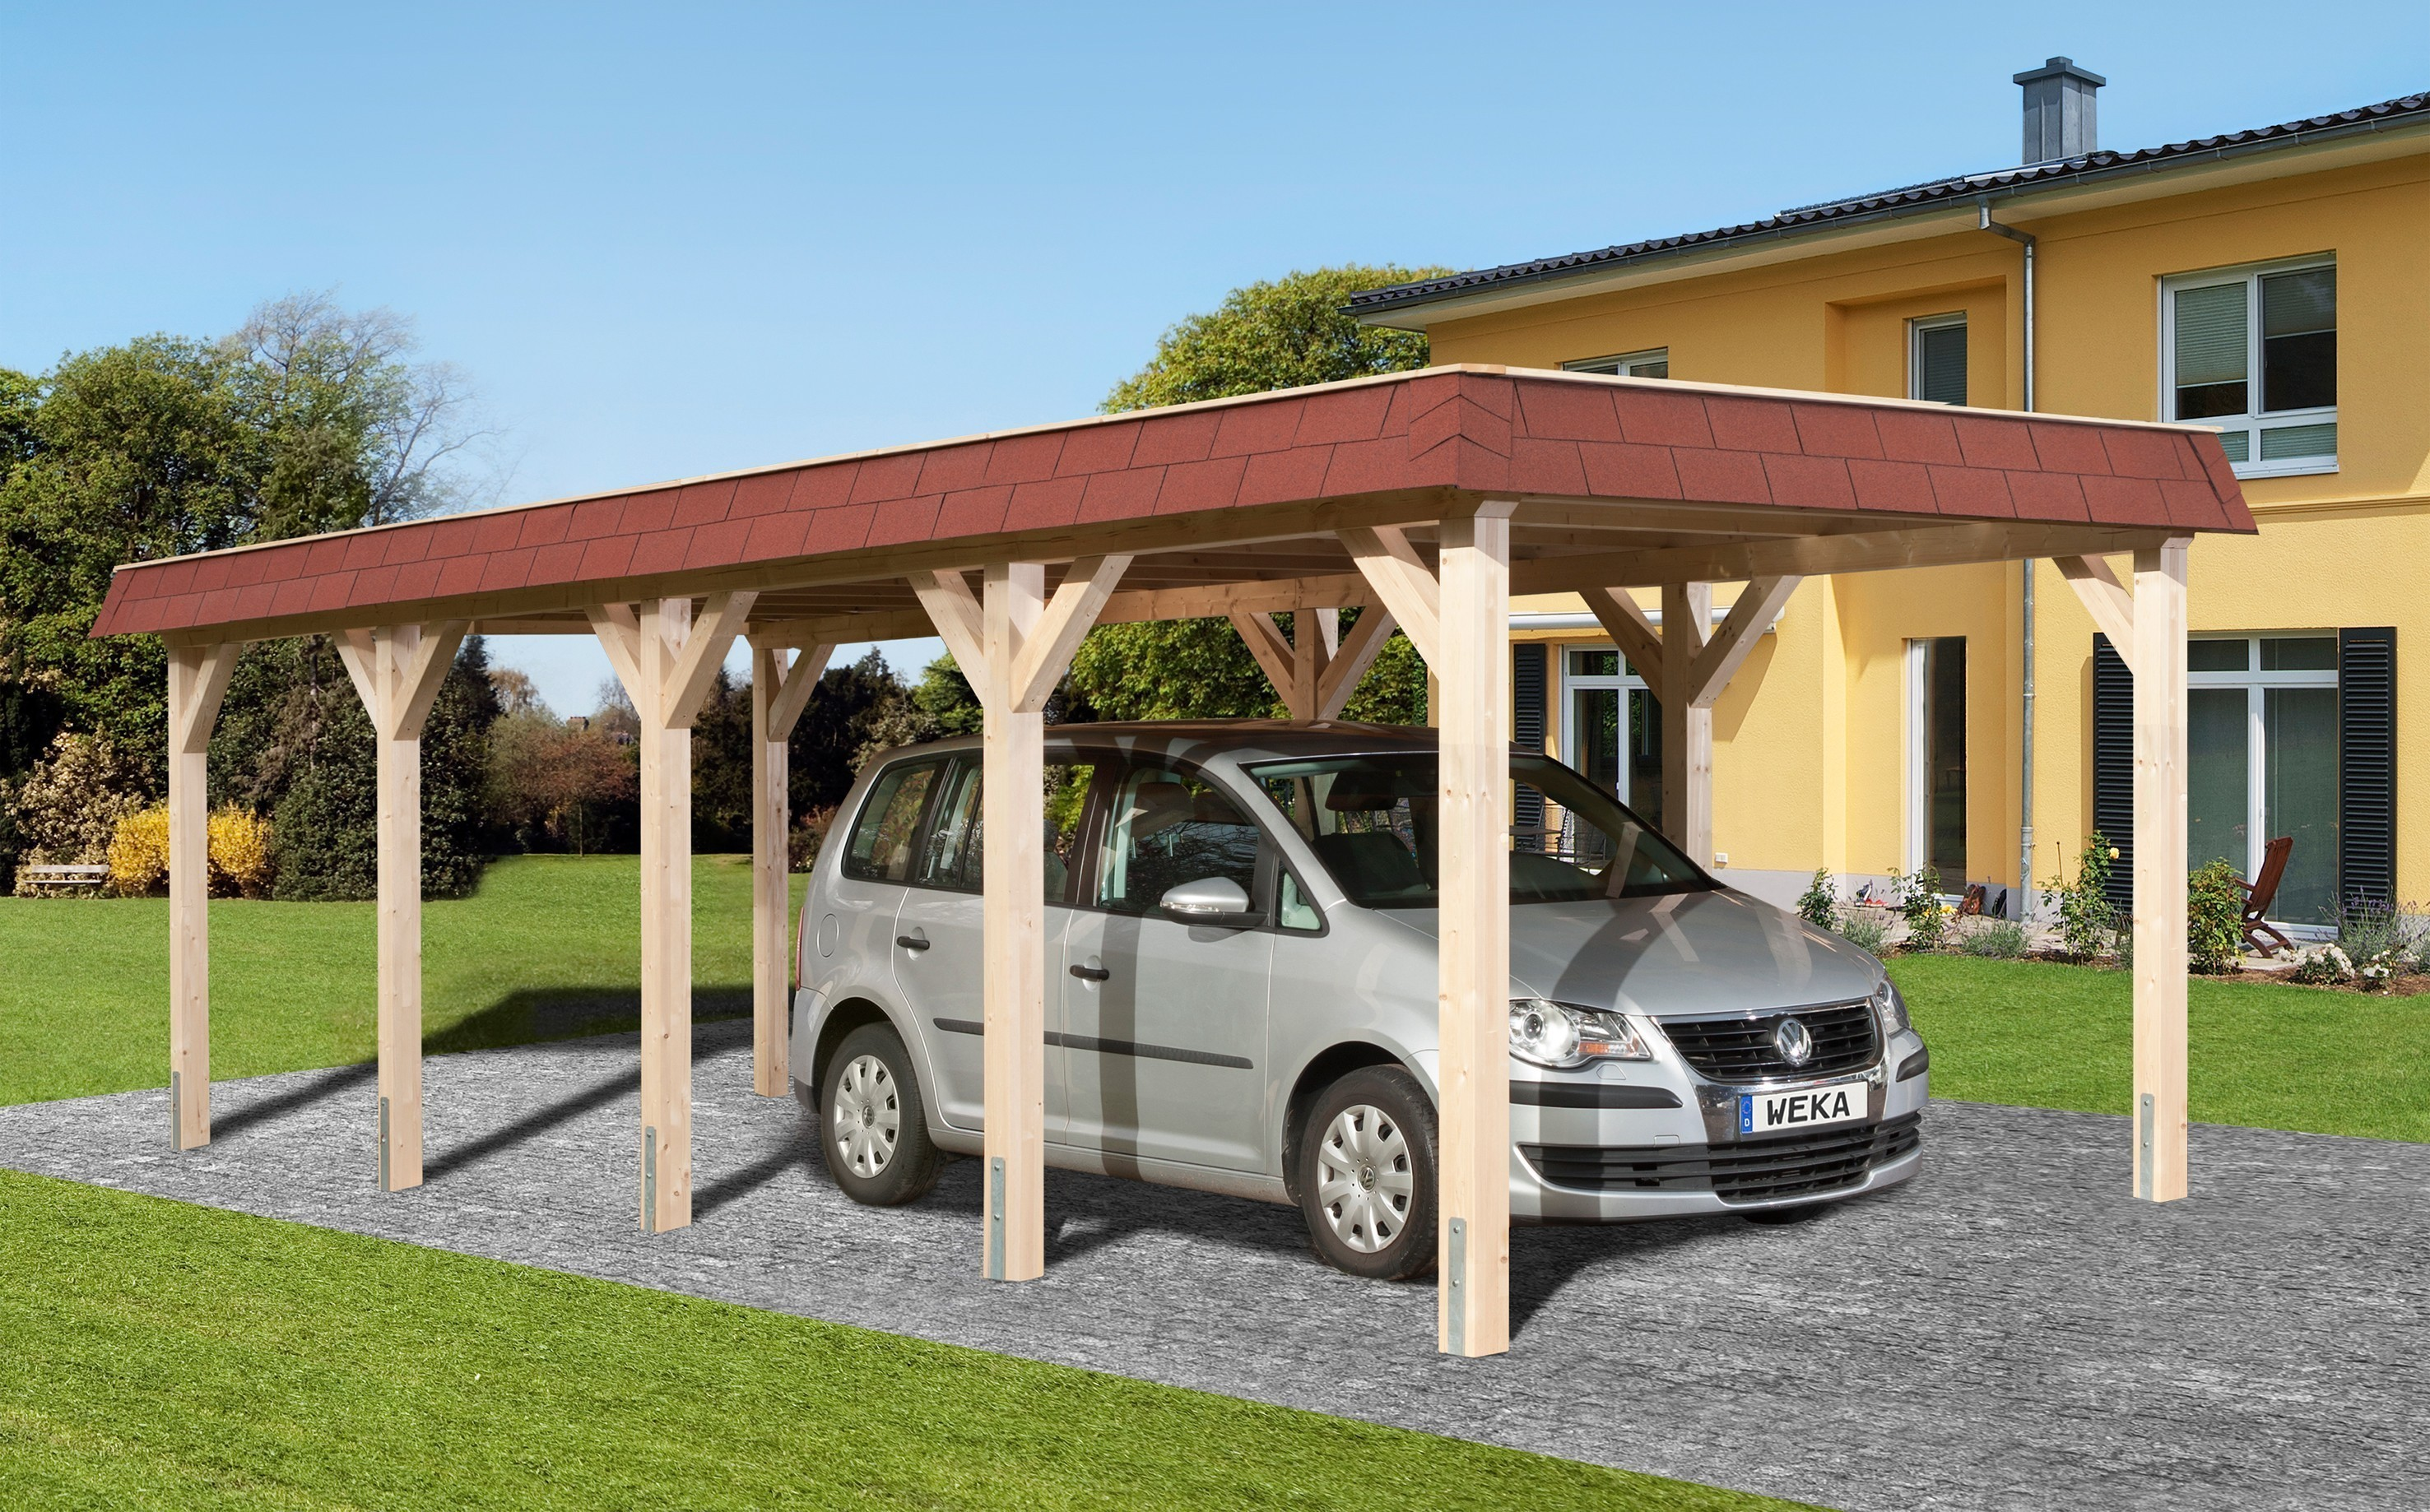 weka carport einzelcarport leimholz 615 gr 2 flachdach 337x832cm bei. Black Bedroom Furniture Sets. Home Design Ideas